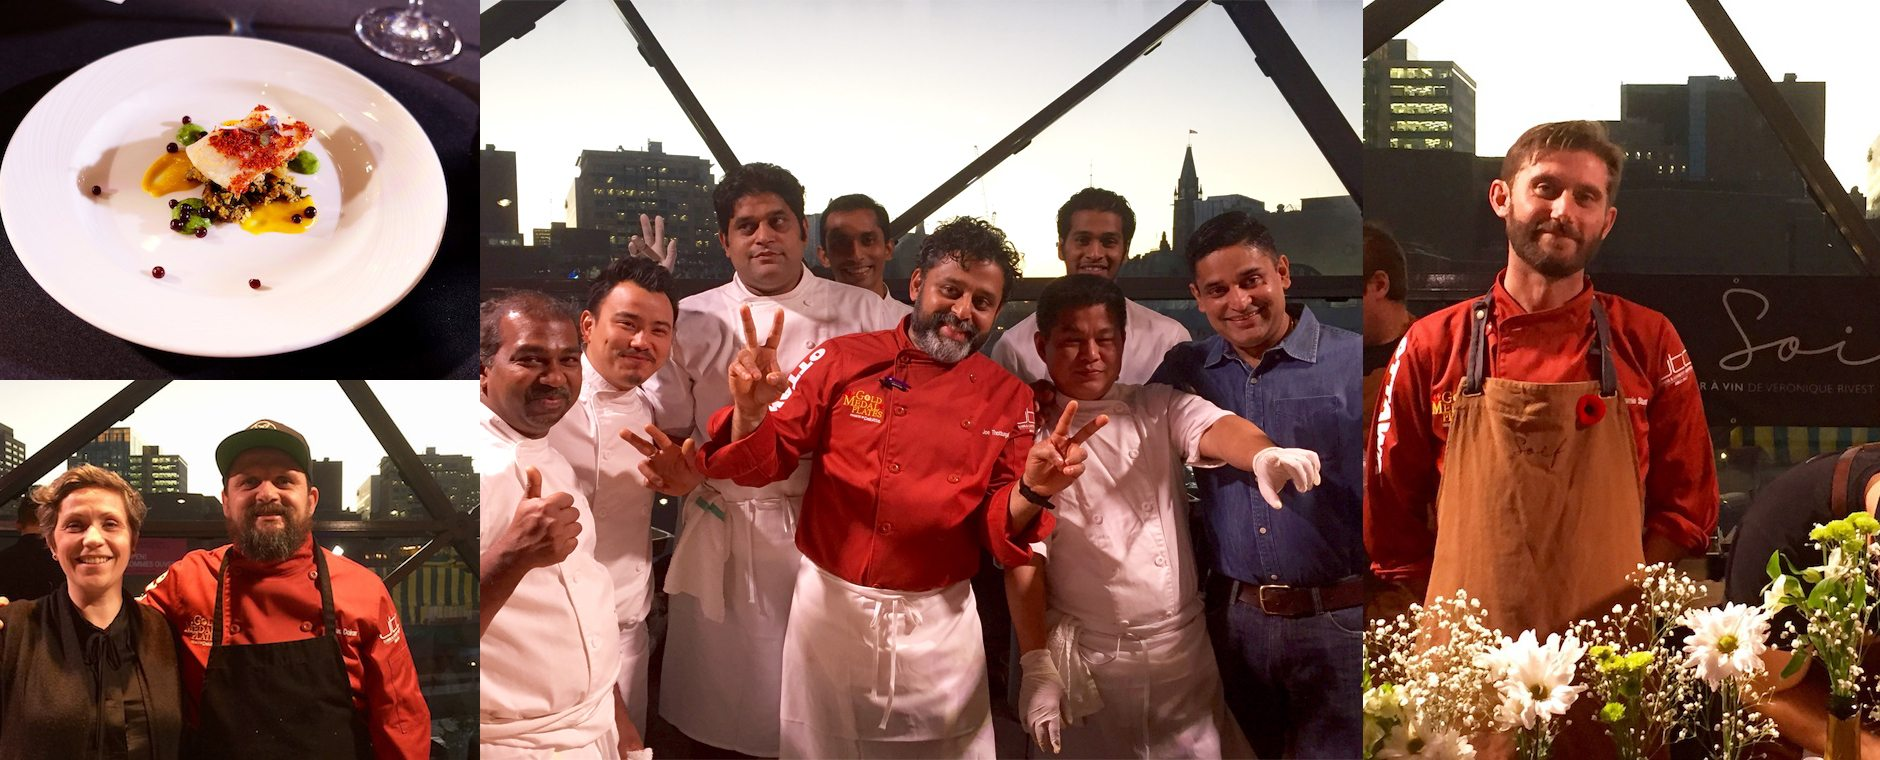 Coconut Lagoon is being overrun… by other chefs! Star lineup for resto takeover